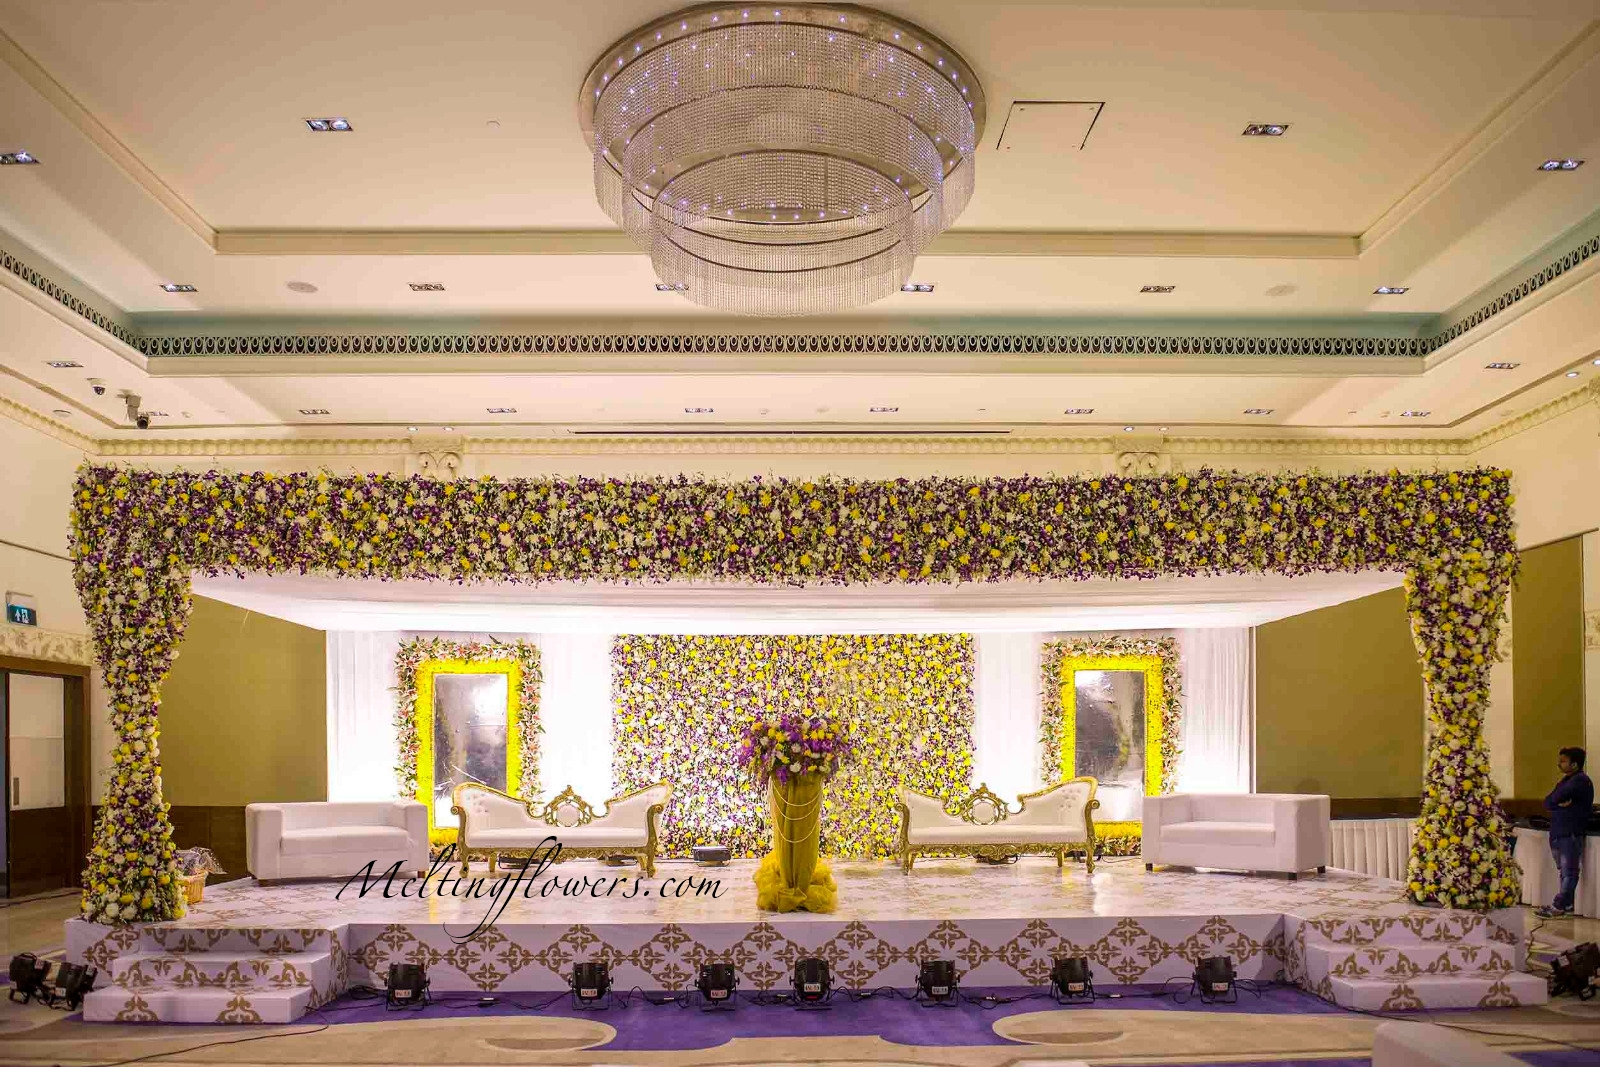 decorations decor reception wedding decoration ideas